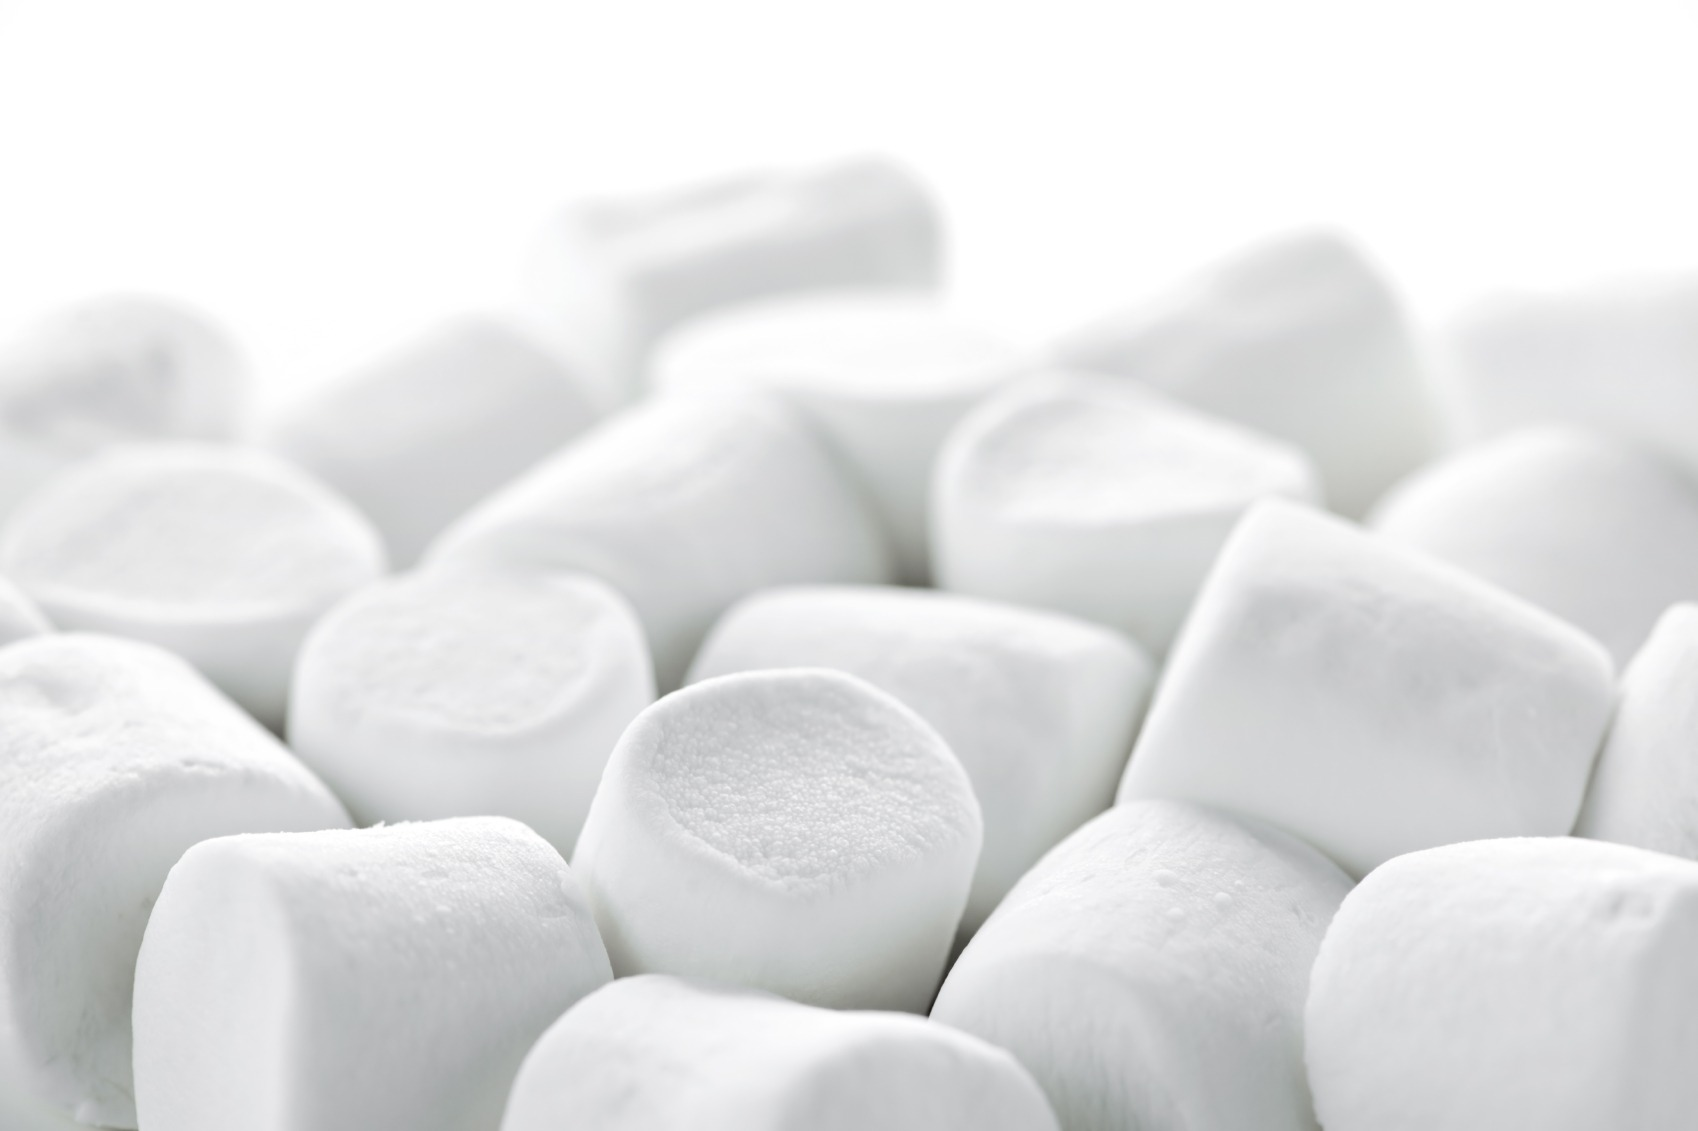 Our Weekly Economic News Roundup and rethinking the Marshmallow Test